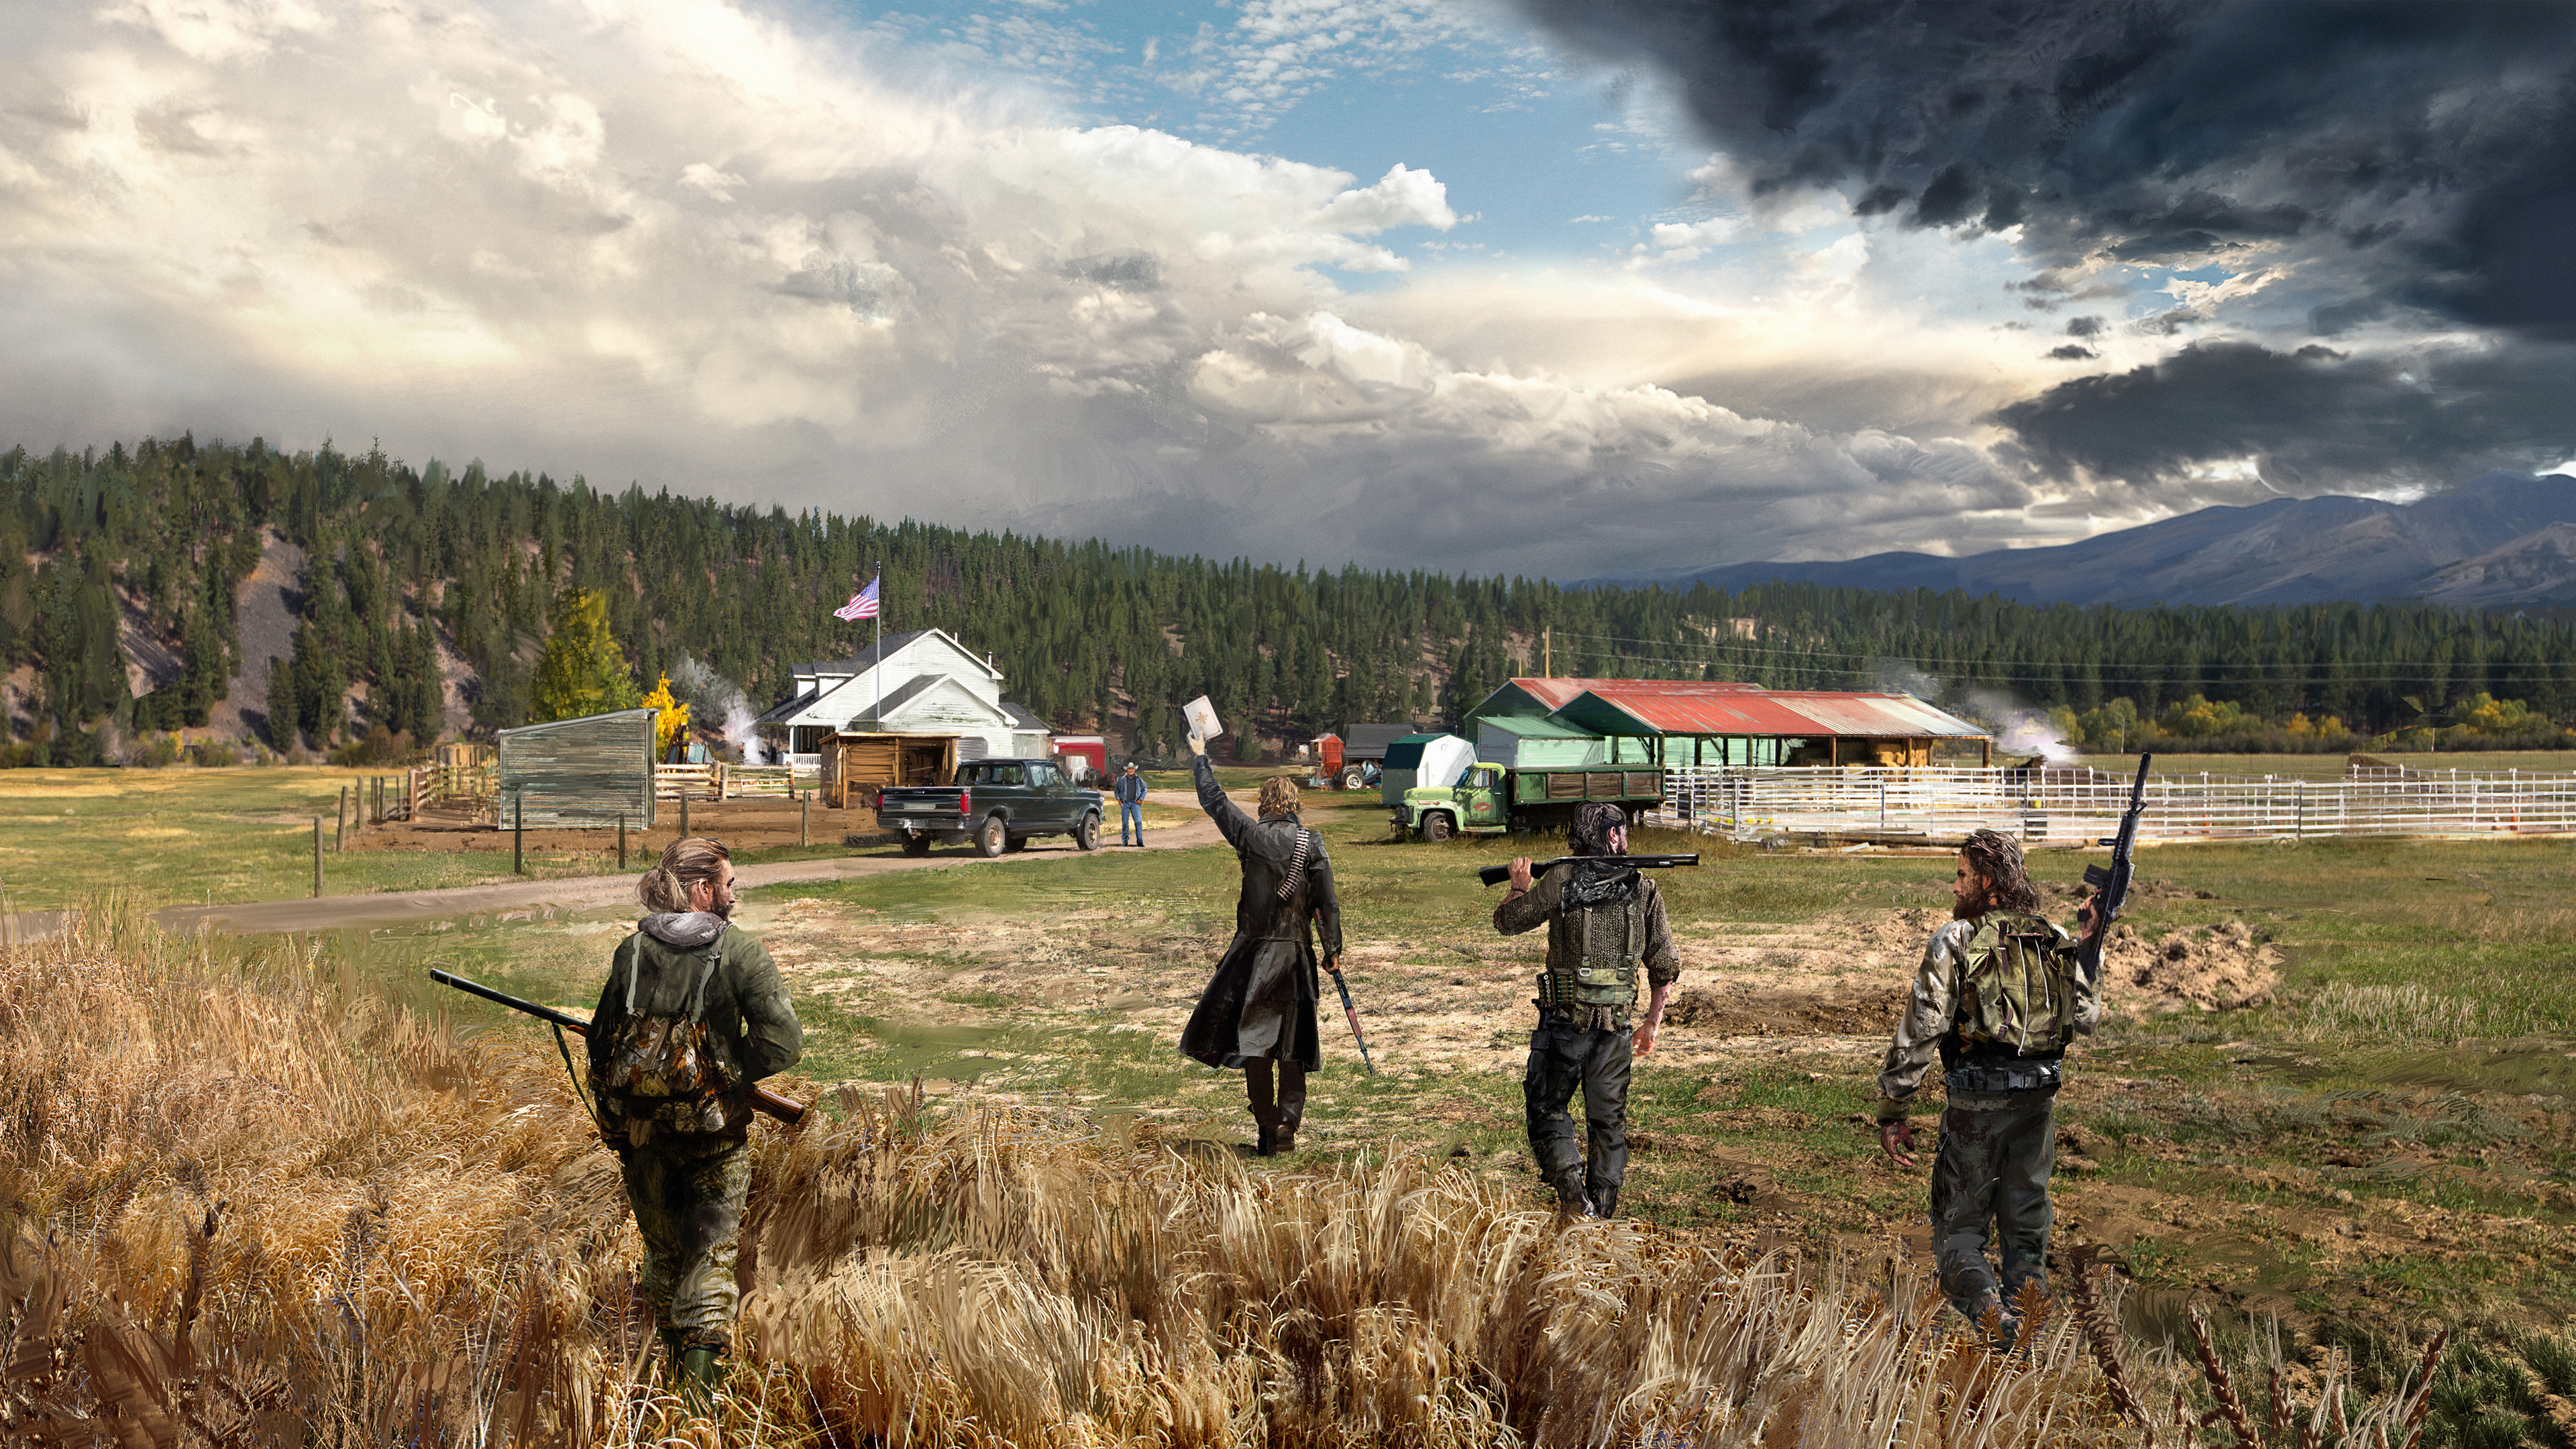 2018 far cry 5 4k 1543621208 - 2018 Far Cry 5 4k - hd-wallpapers, games wallpapers, far cry 5 wallpapers, 4k-wallpapers, 2018 games wallpapers